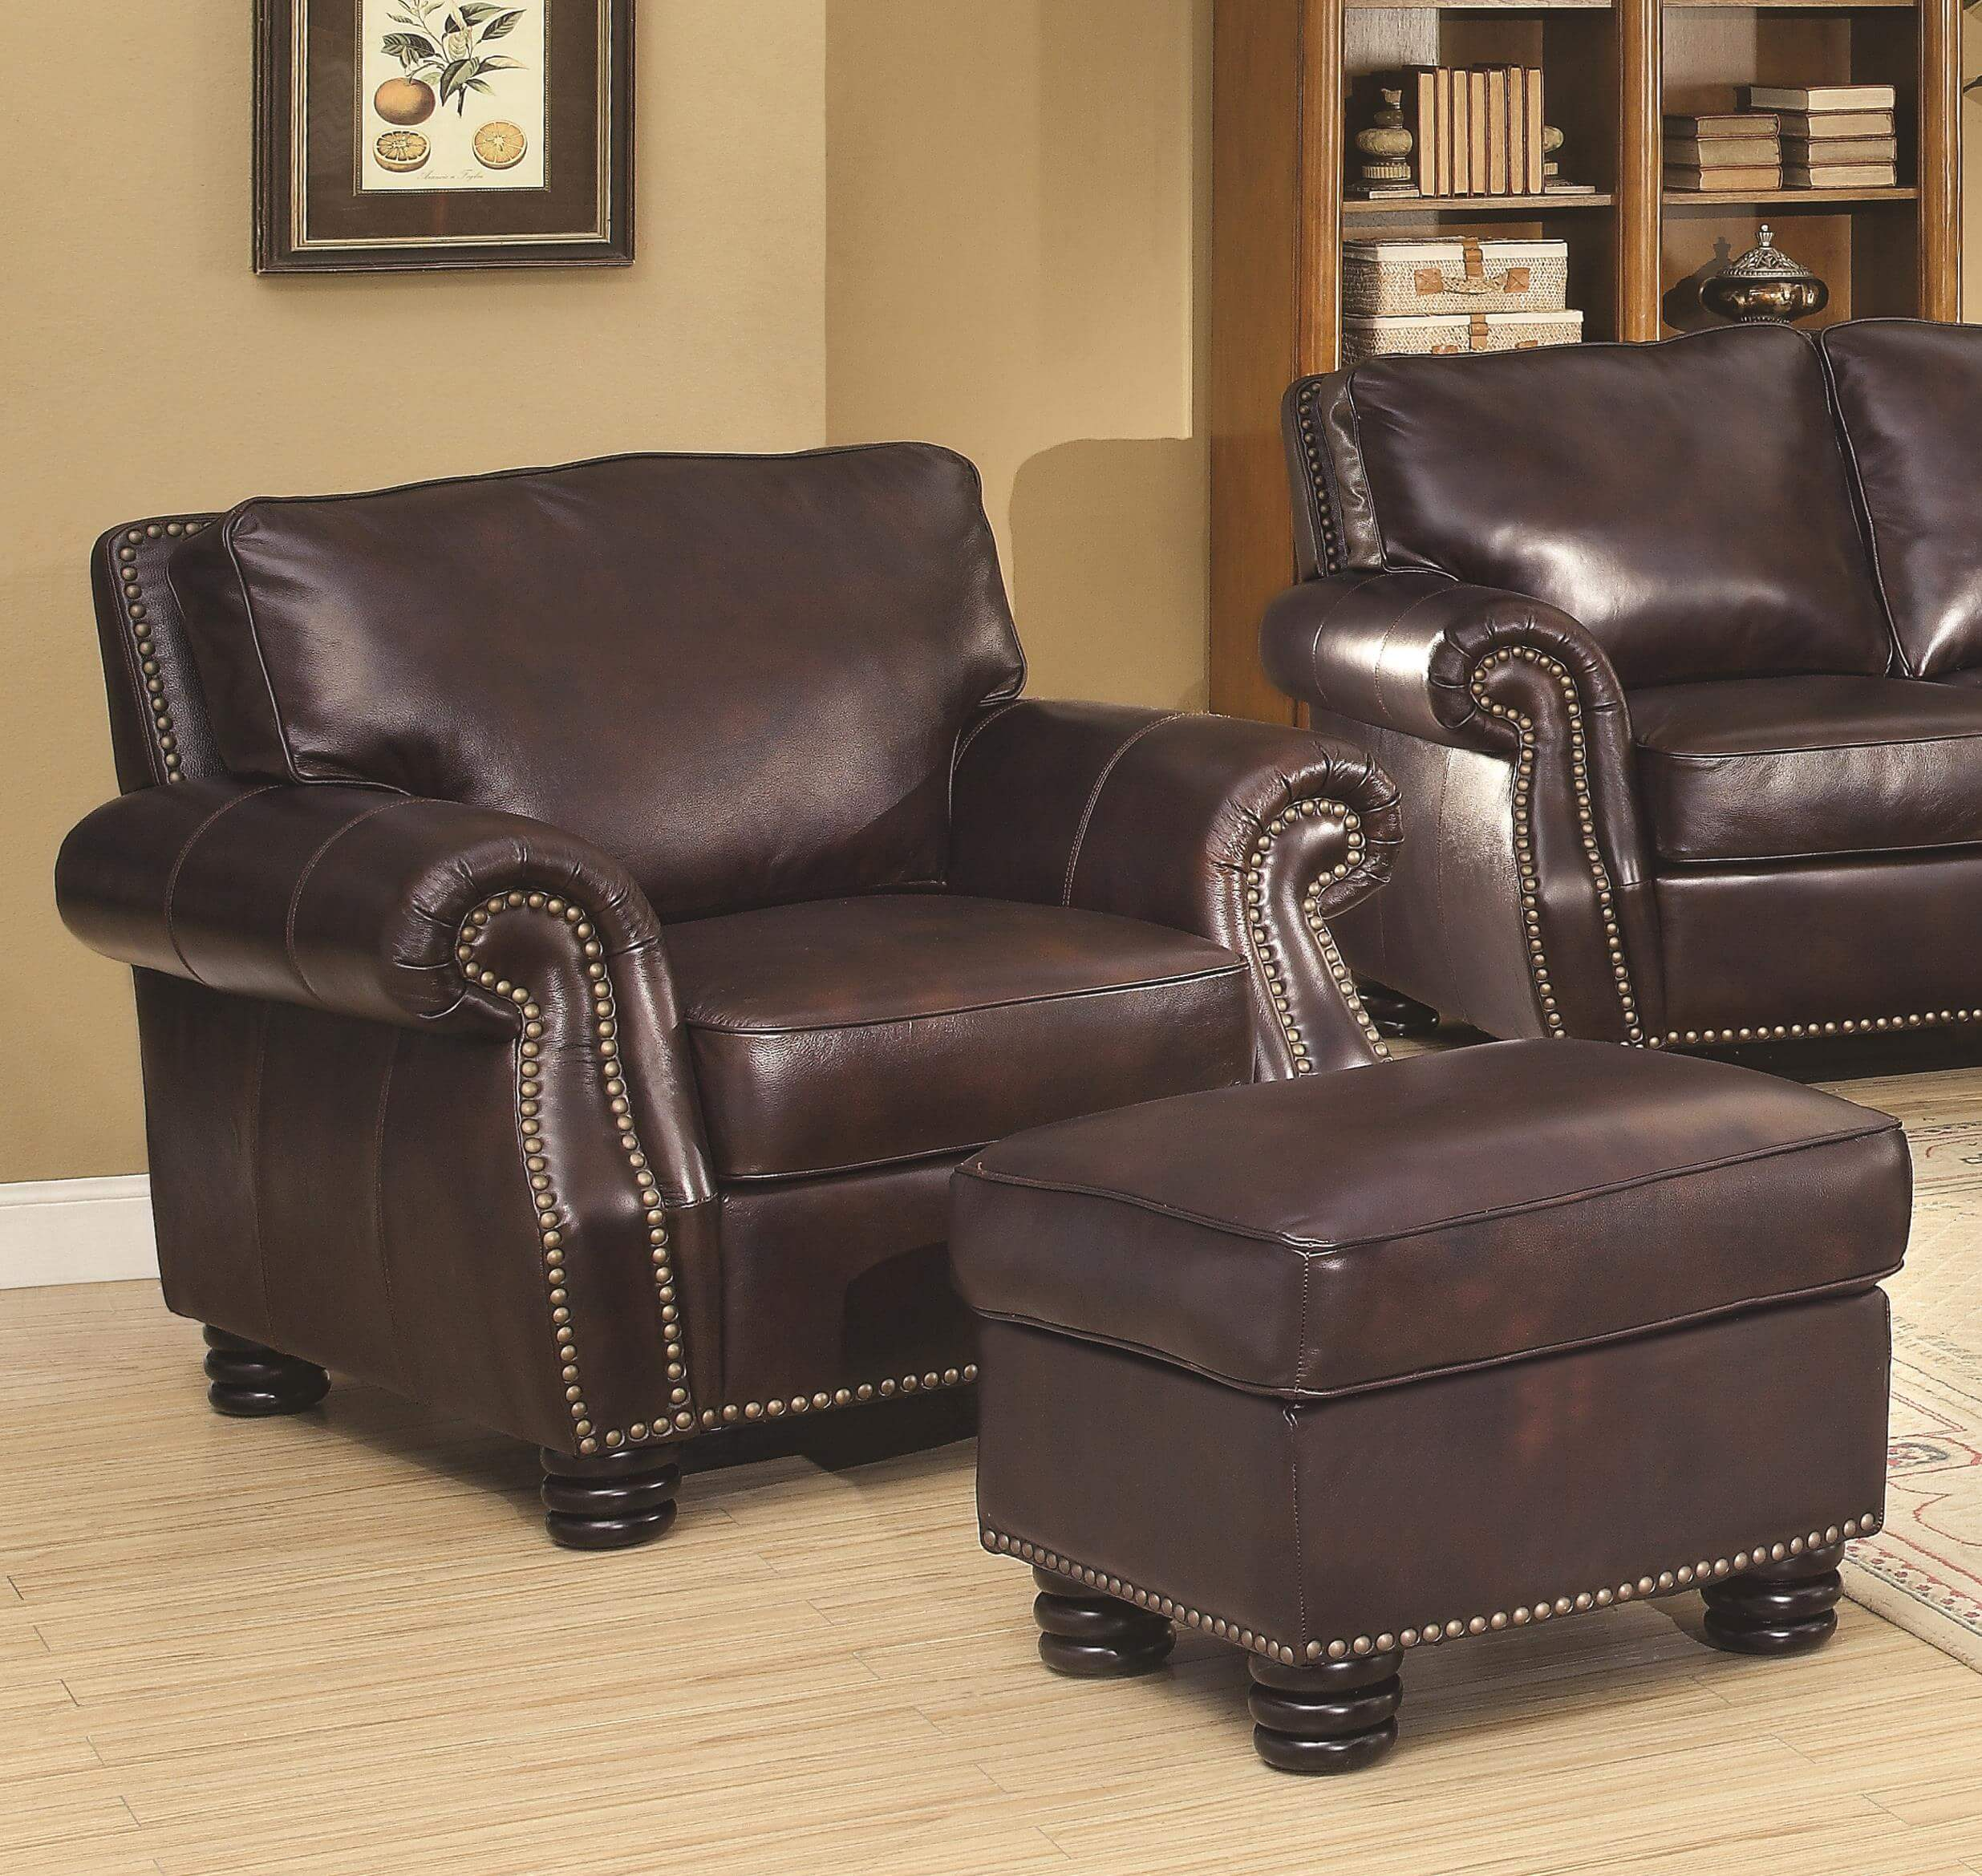 Leather Chair And Ottoman Fy Oversized Chair  Swivel Club Chairs